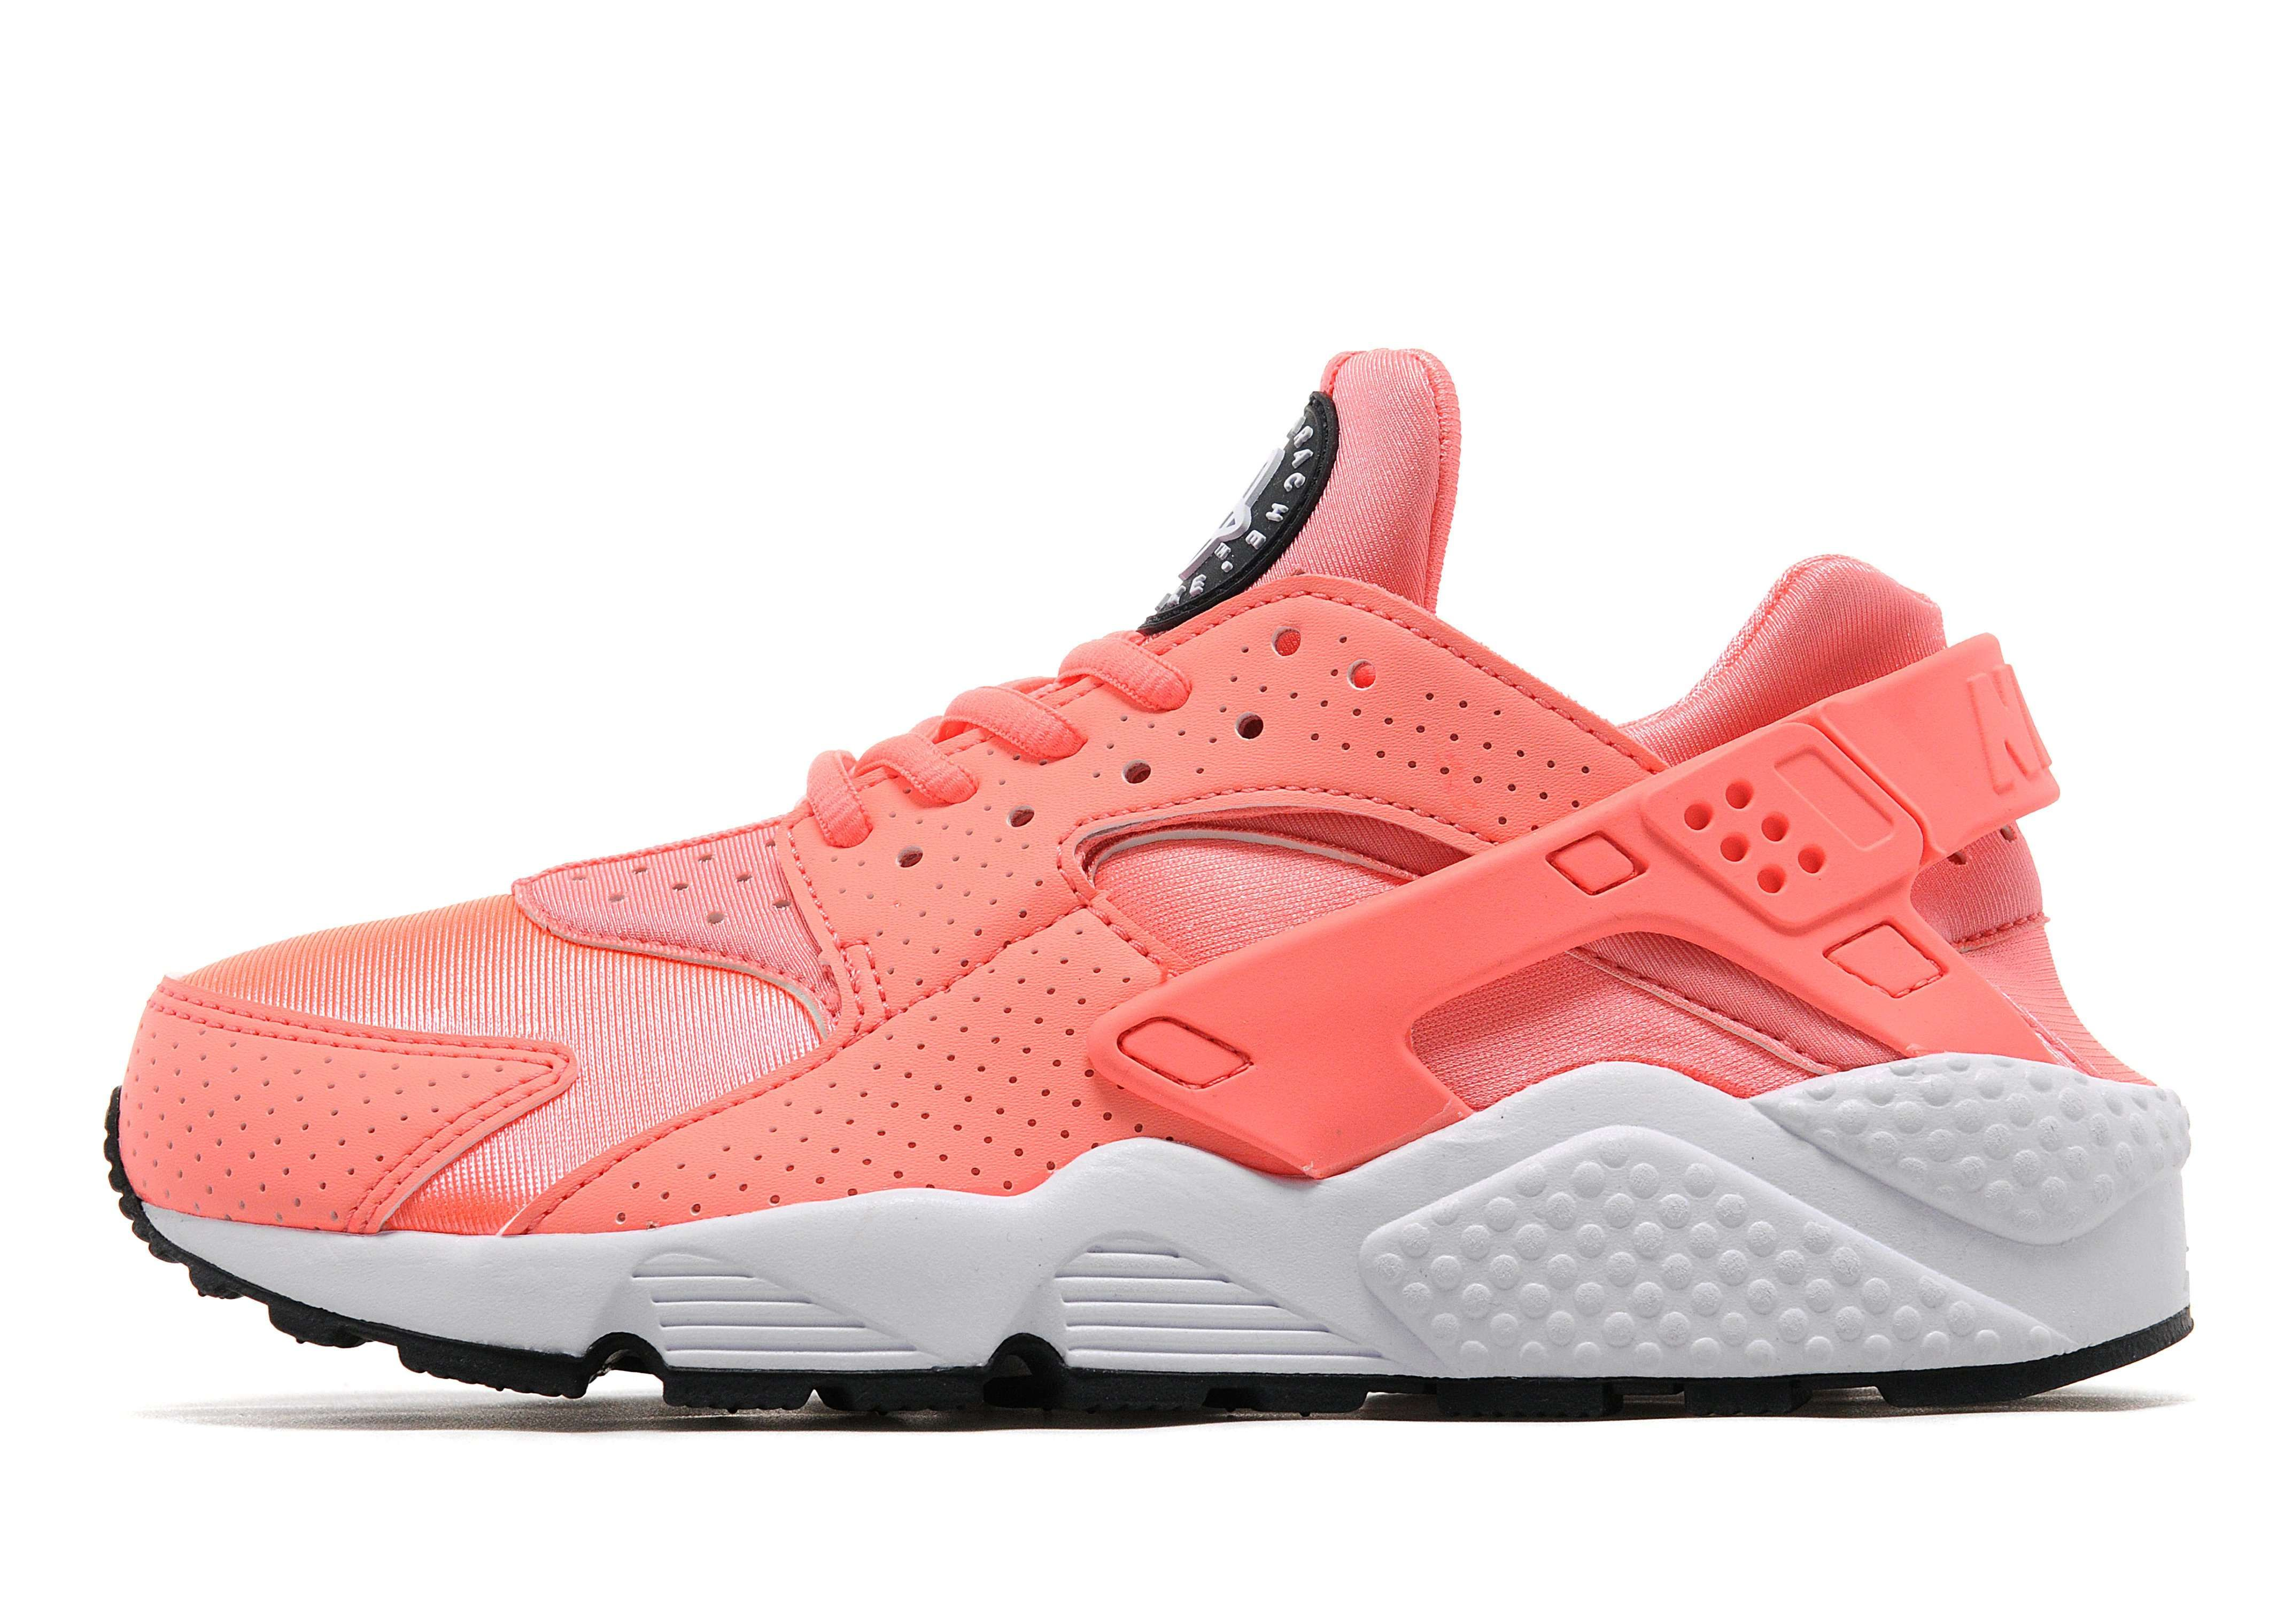 Nike Air Huarache Women's - Shop online for Nike Air Huarache Women's with JD  Sports, the UK's leading sports fashion retailer.